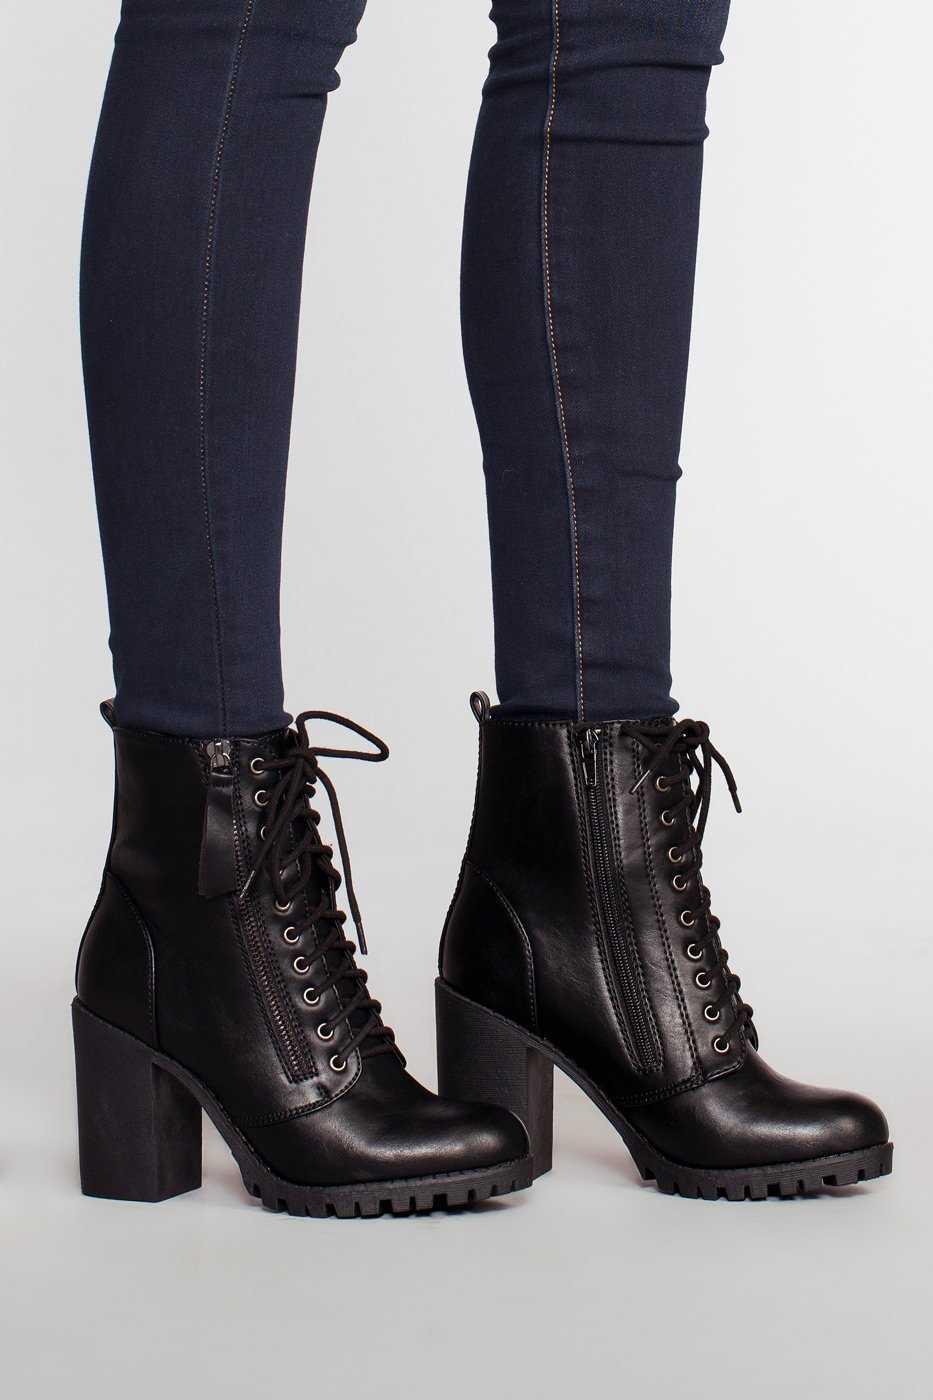 Black Combat Boots With Floral Interior 6